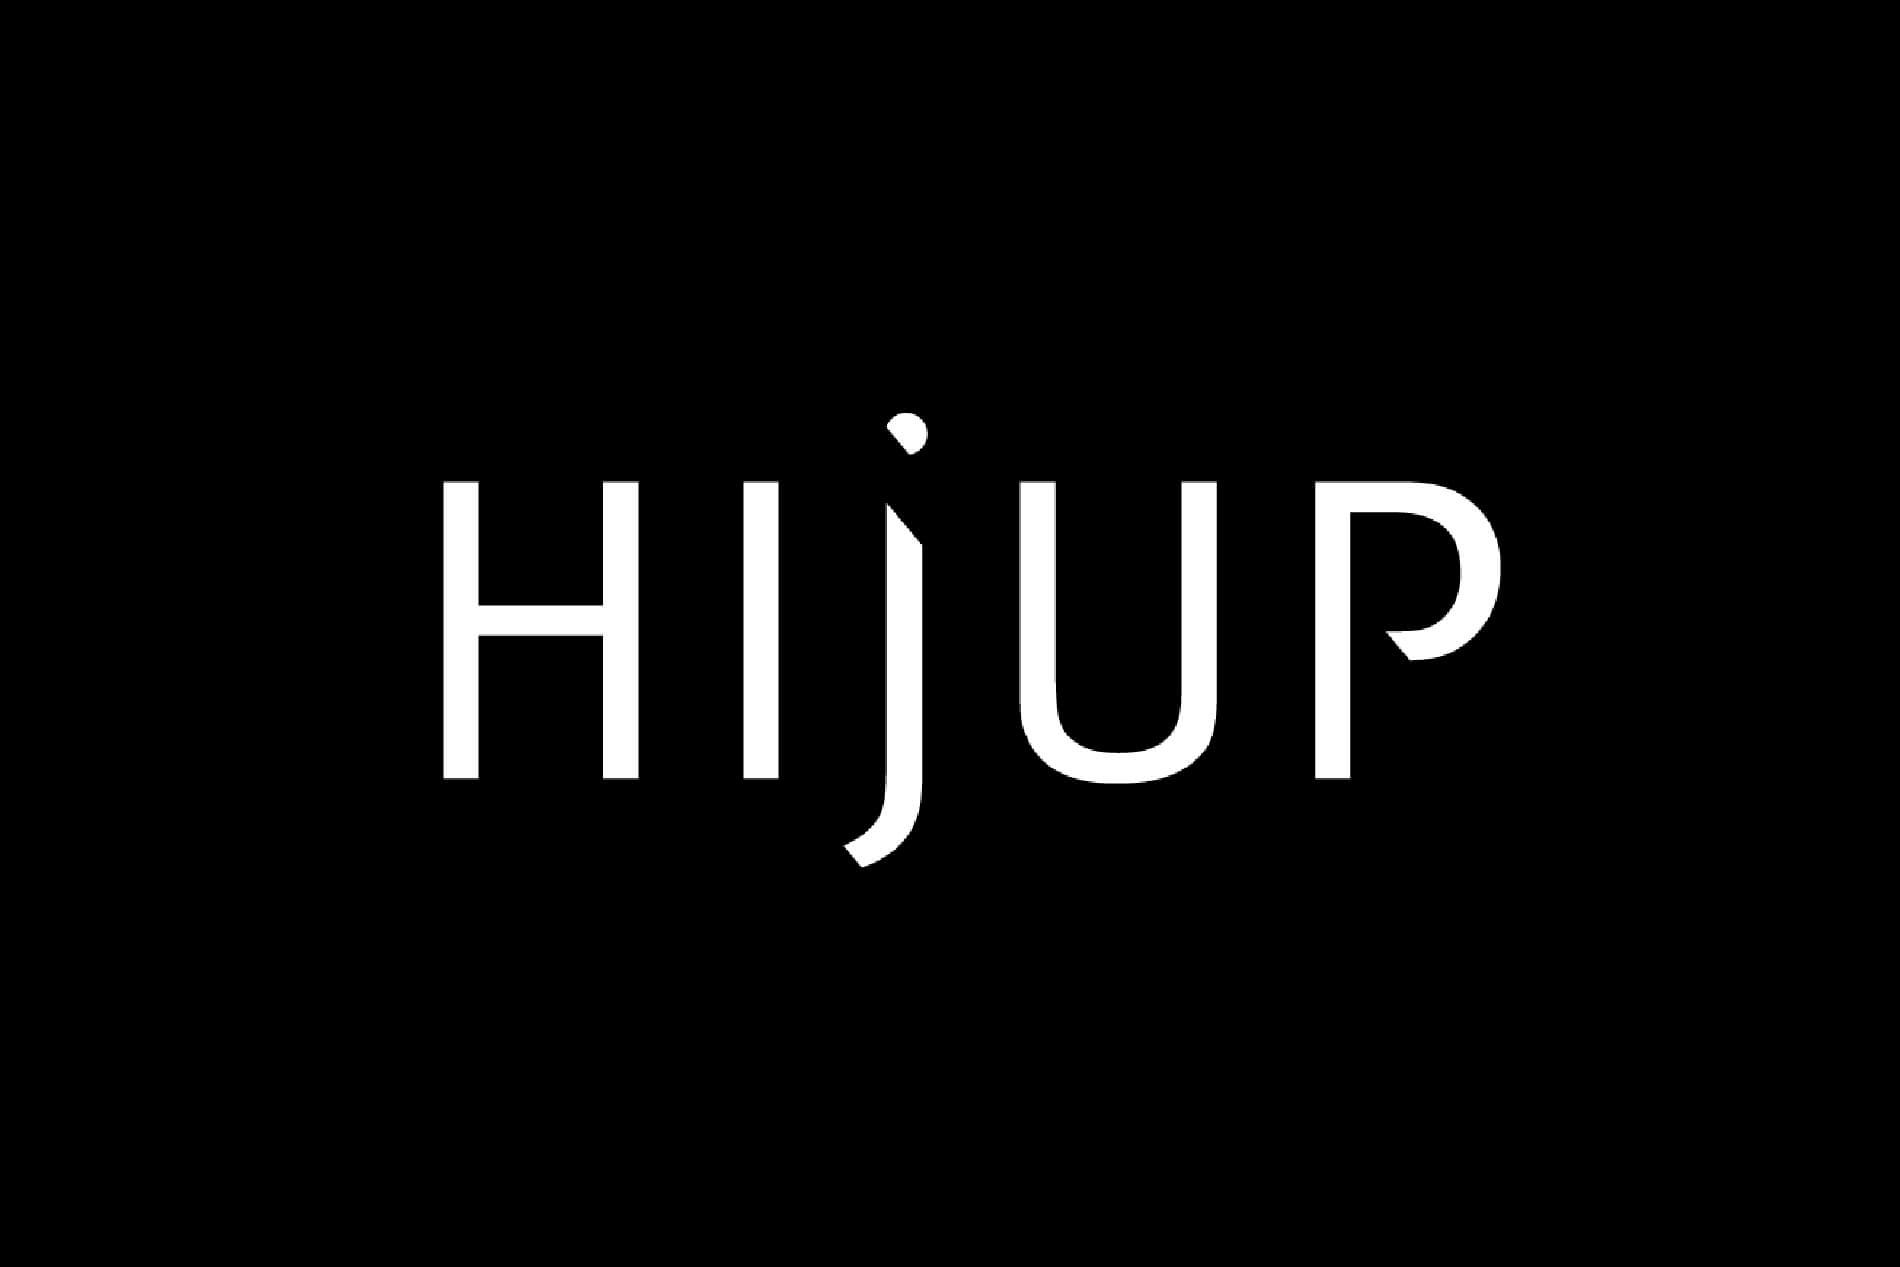 Indonesian modest fashion e-commerce leader Hijup to launch in the UK